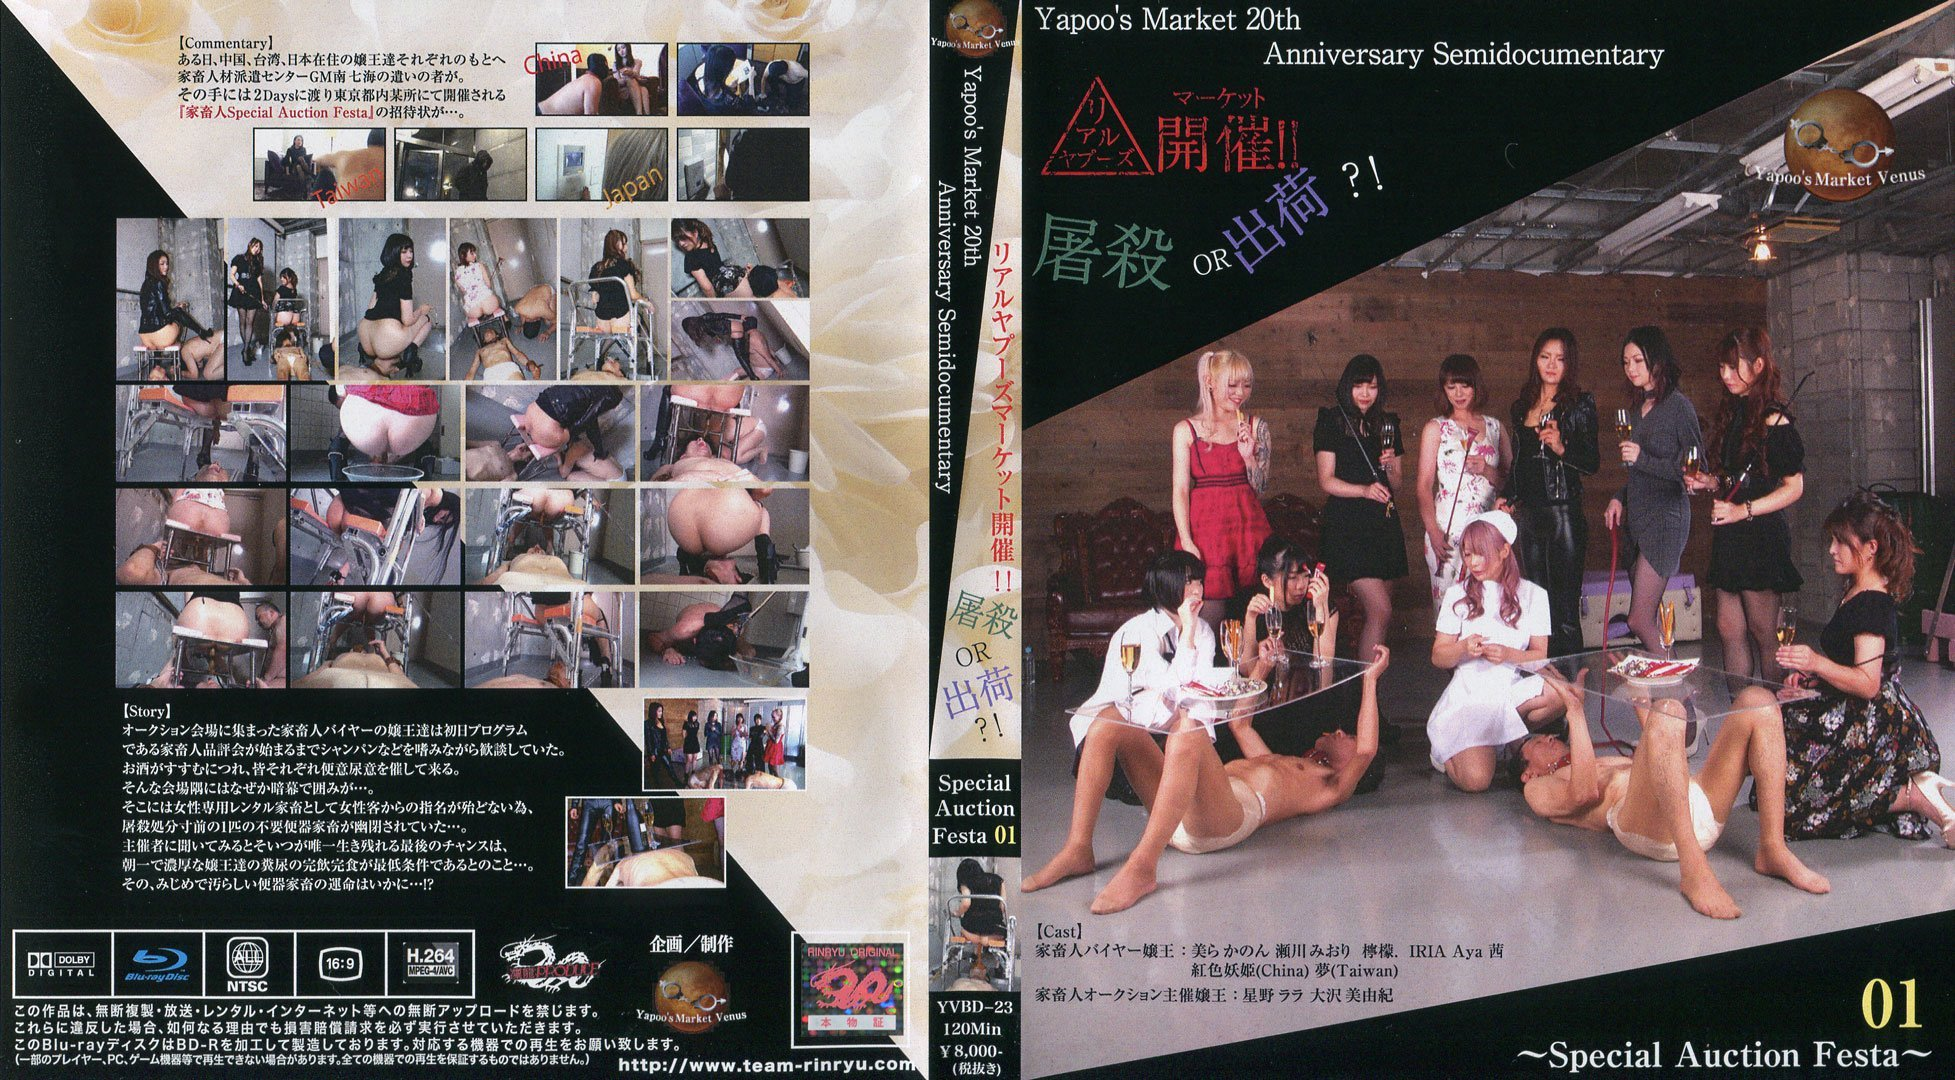 YVBD-23 – Yapoo's Market 20th Anniversary Semidocumentary – BluRay1080p